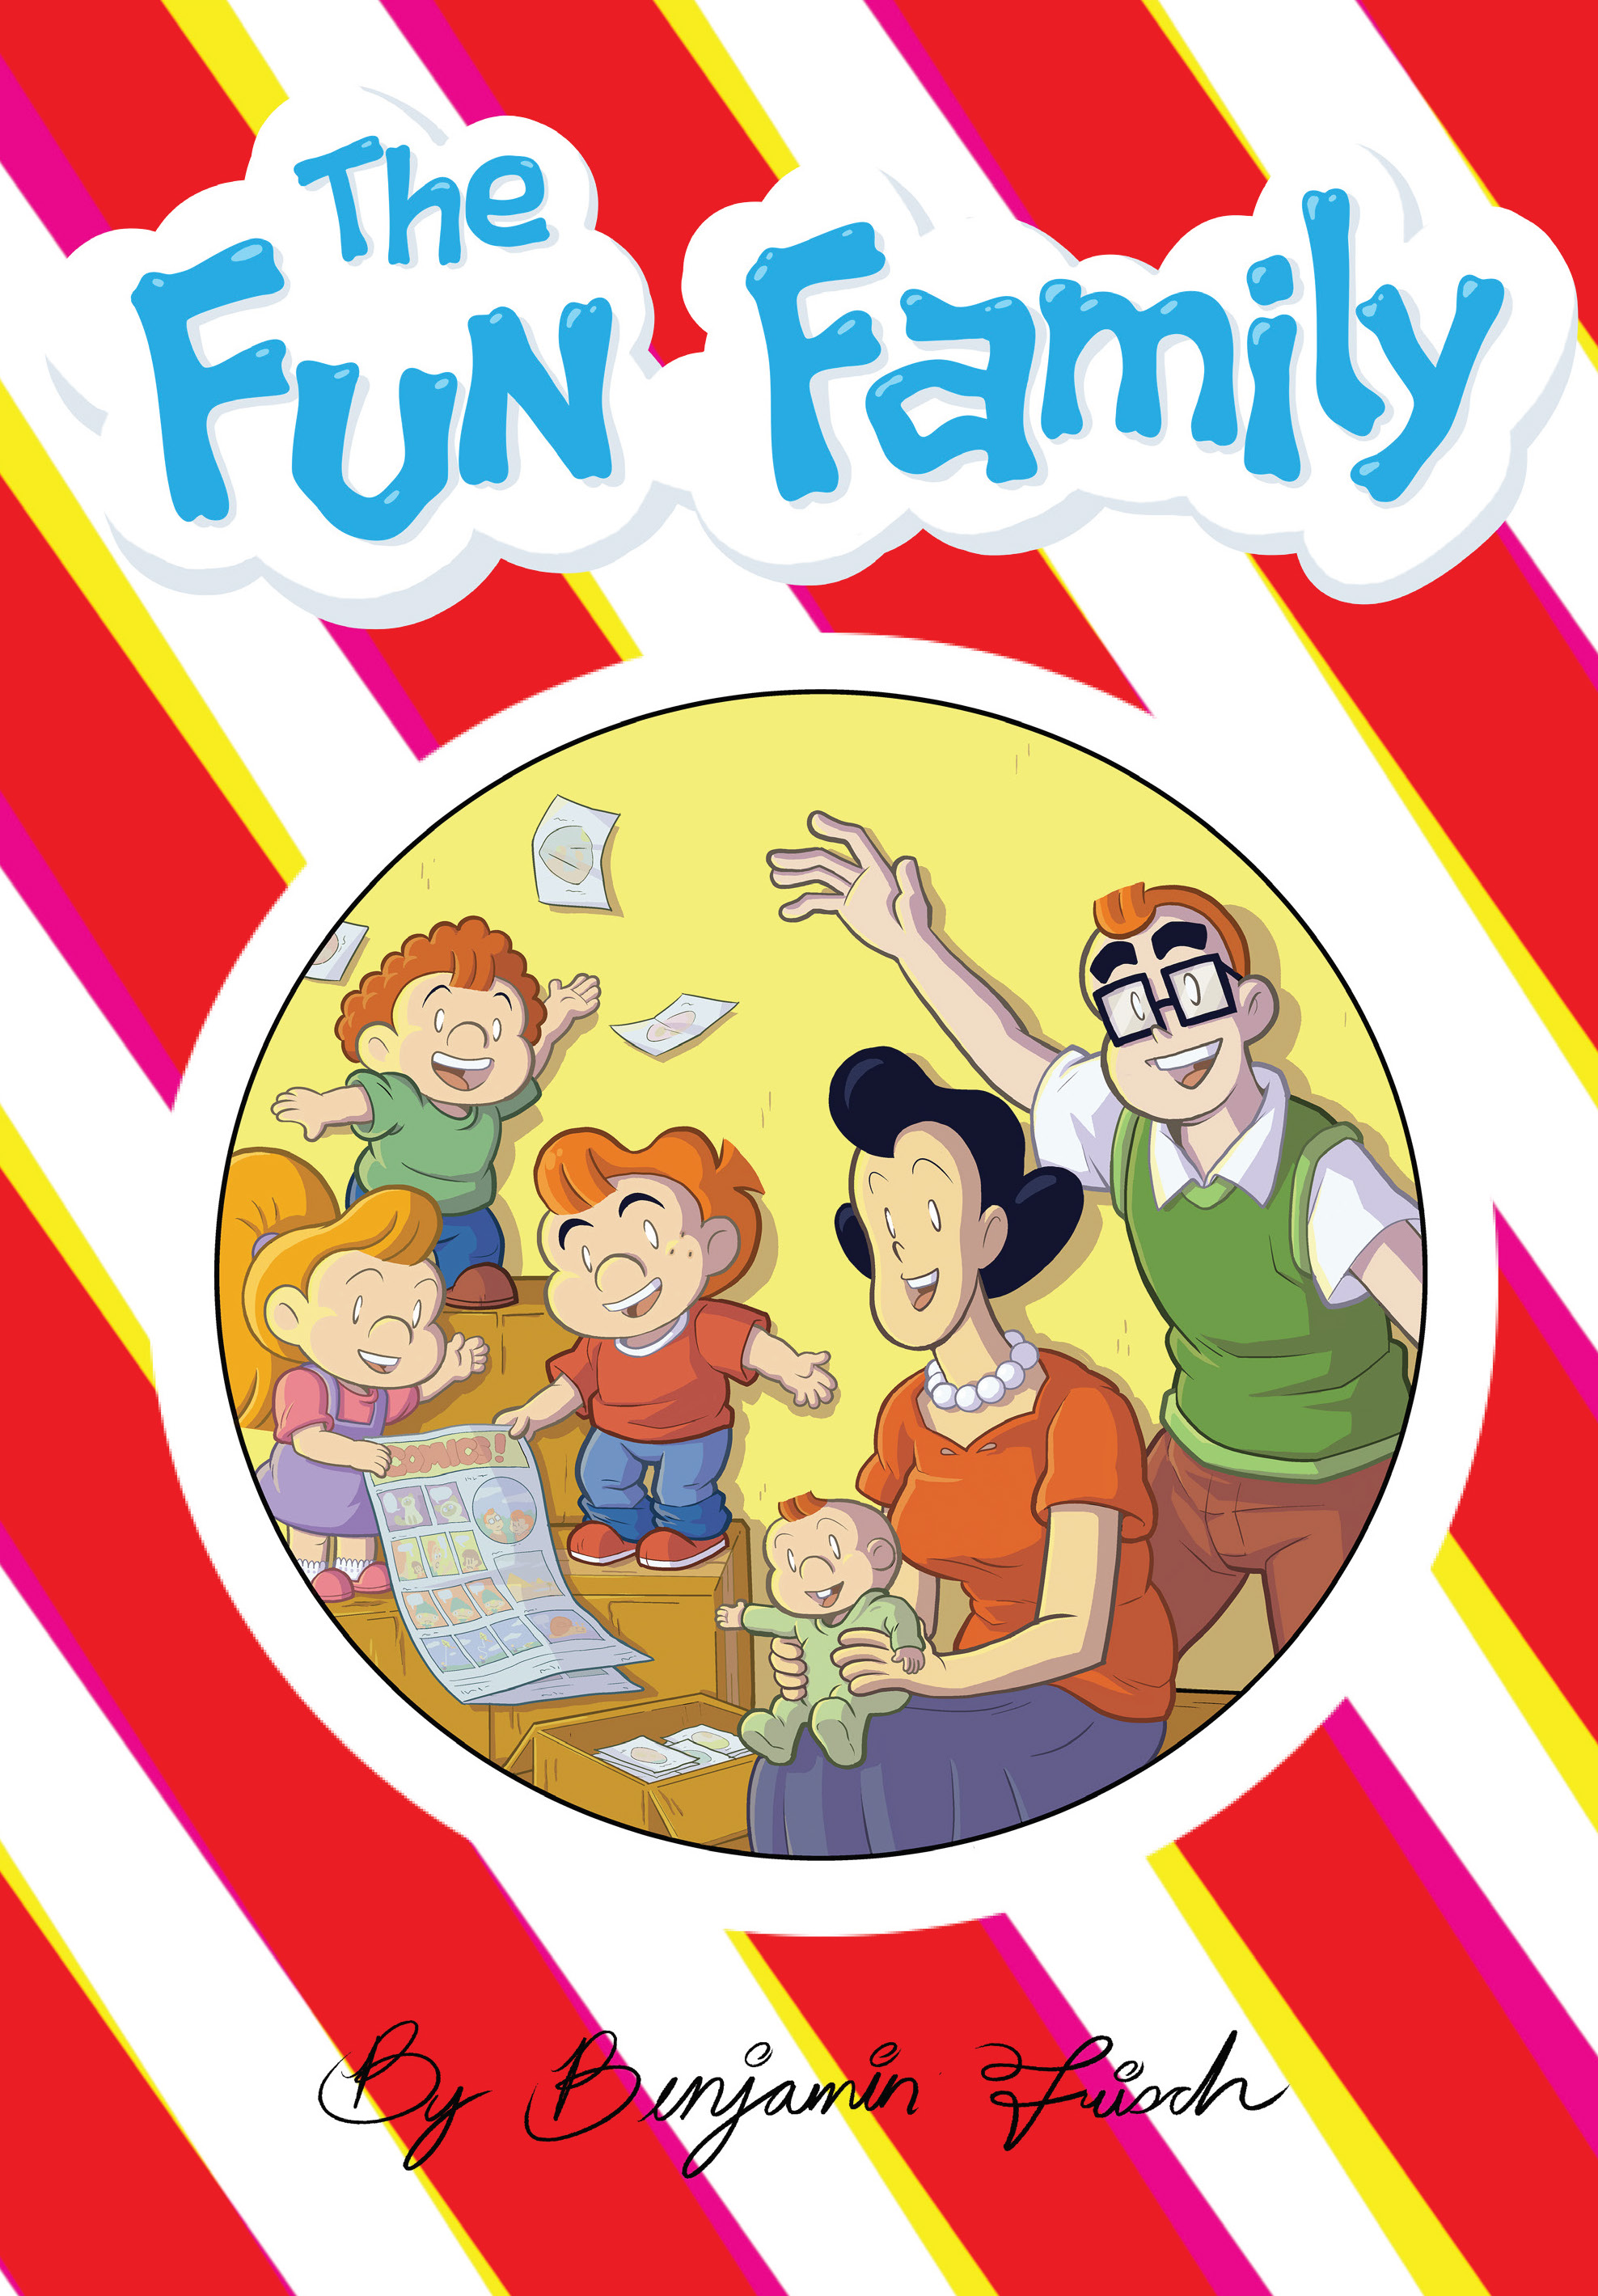 Fun And Simple Pool Noodle Boat Craft For Kids: Benjamin Frisch Brings Parody & Satire With THE FUN FAMILY